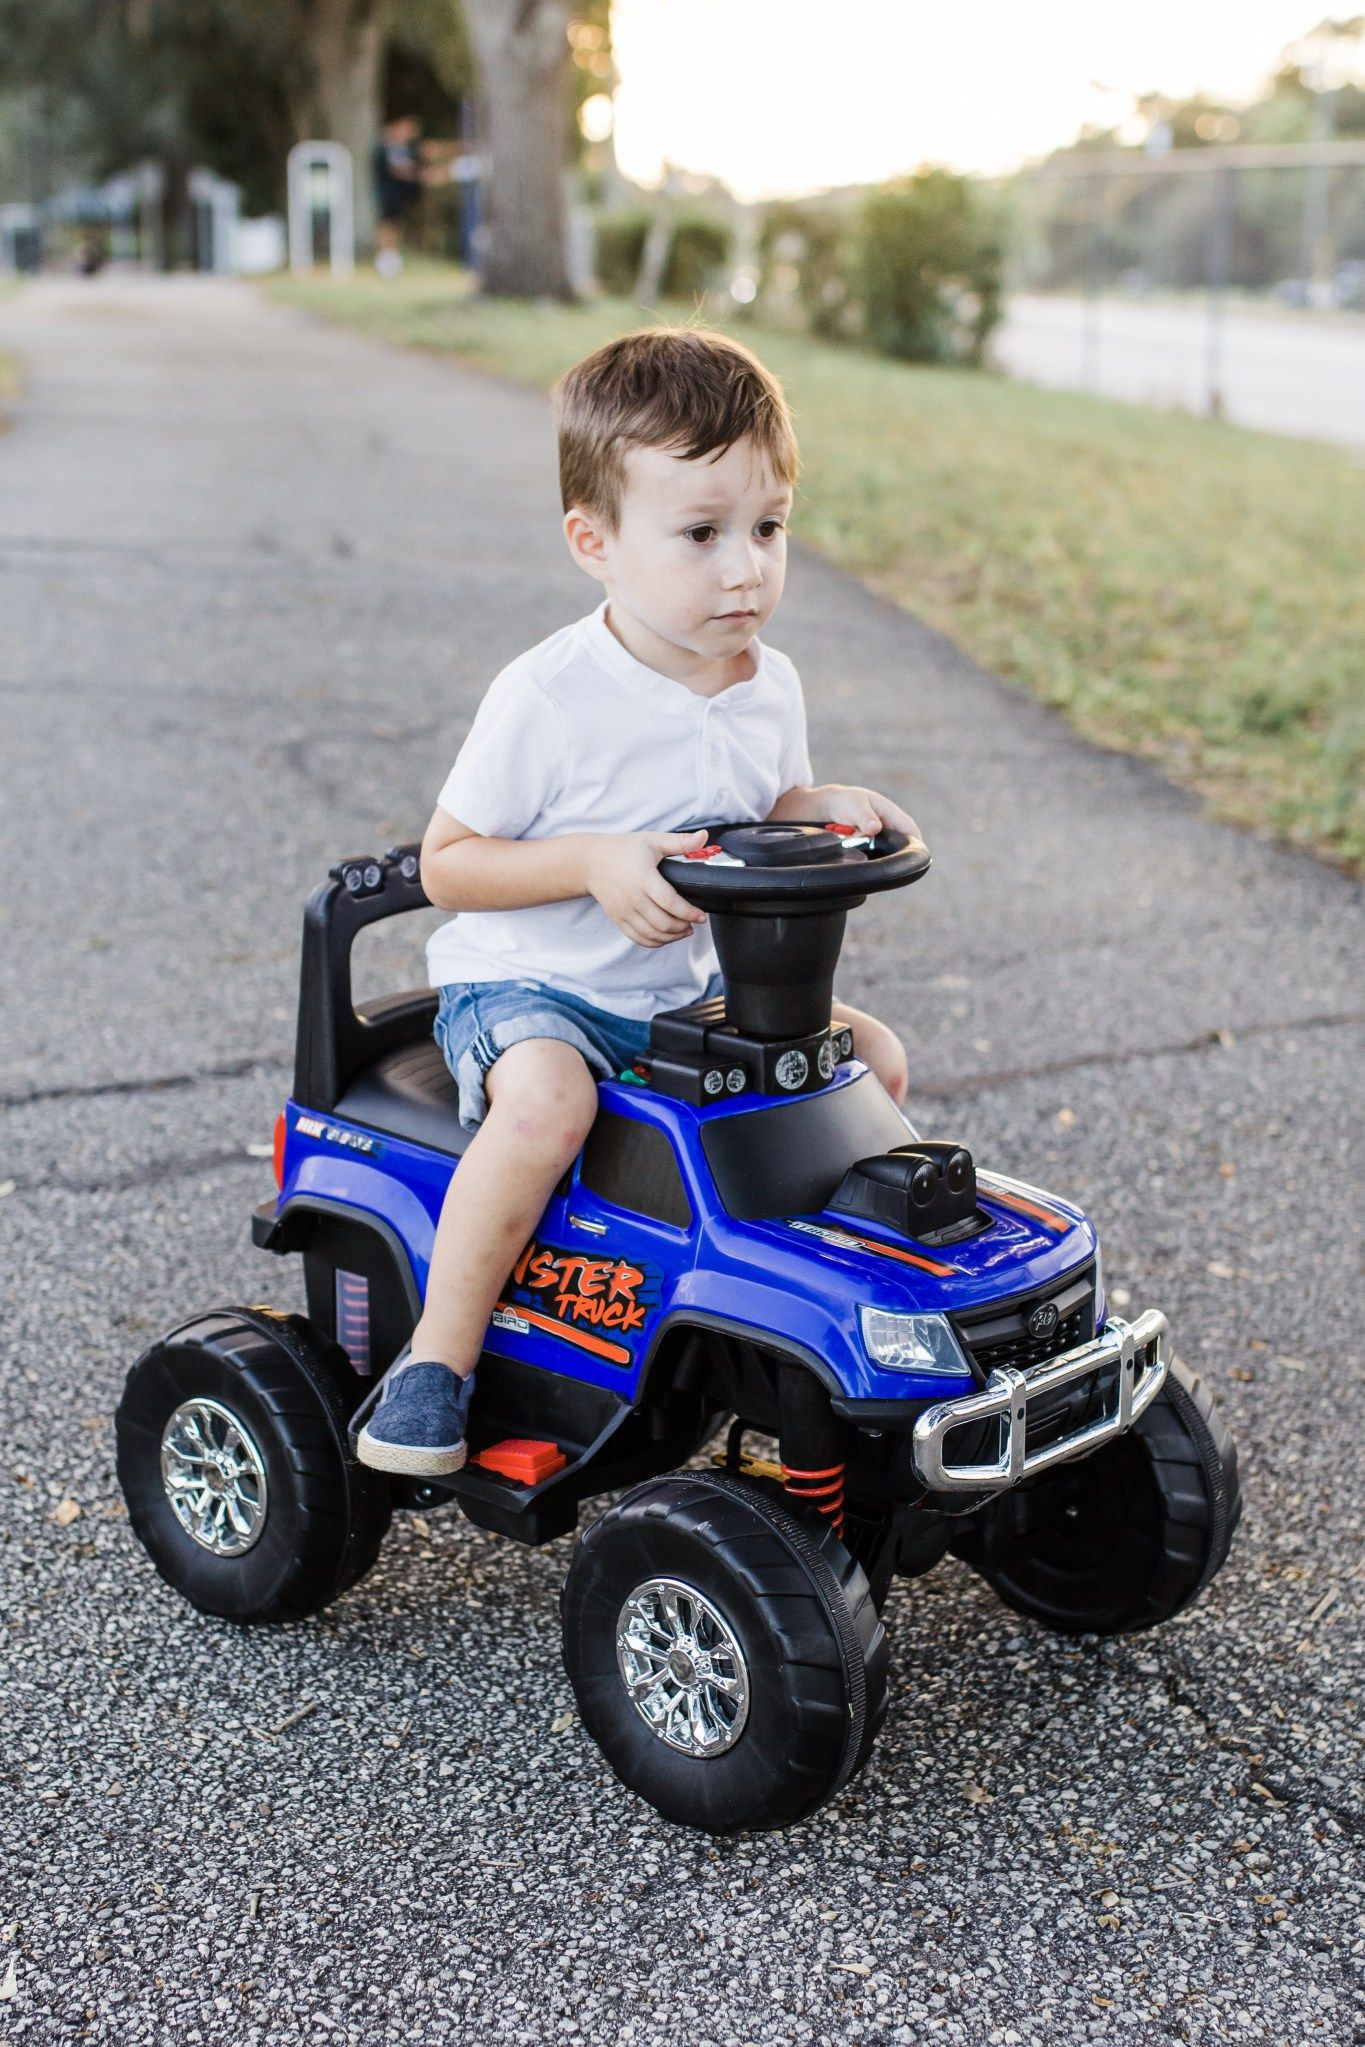 Get the holidays rolling with the RC Monster Truck ride-on